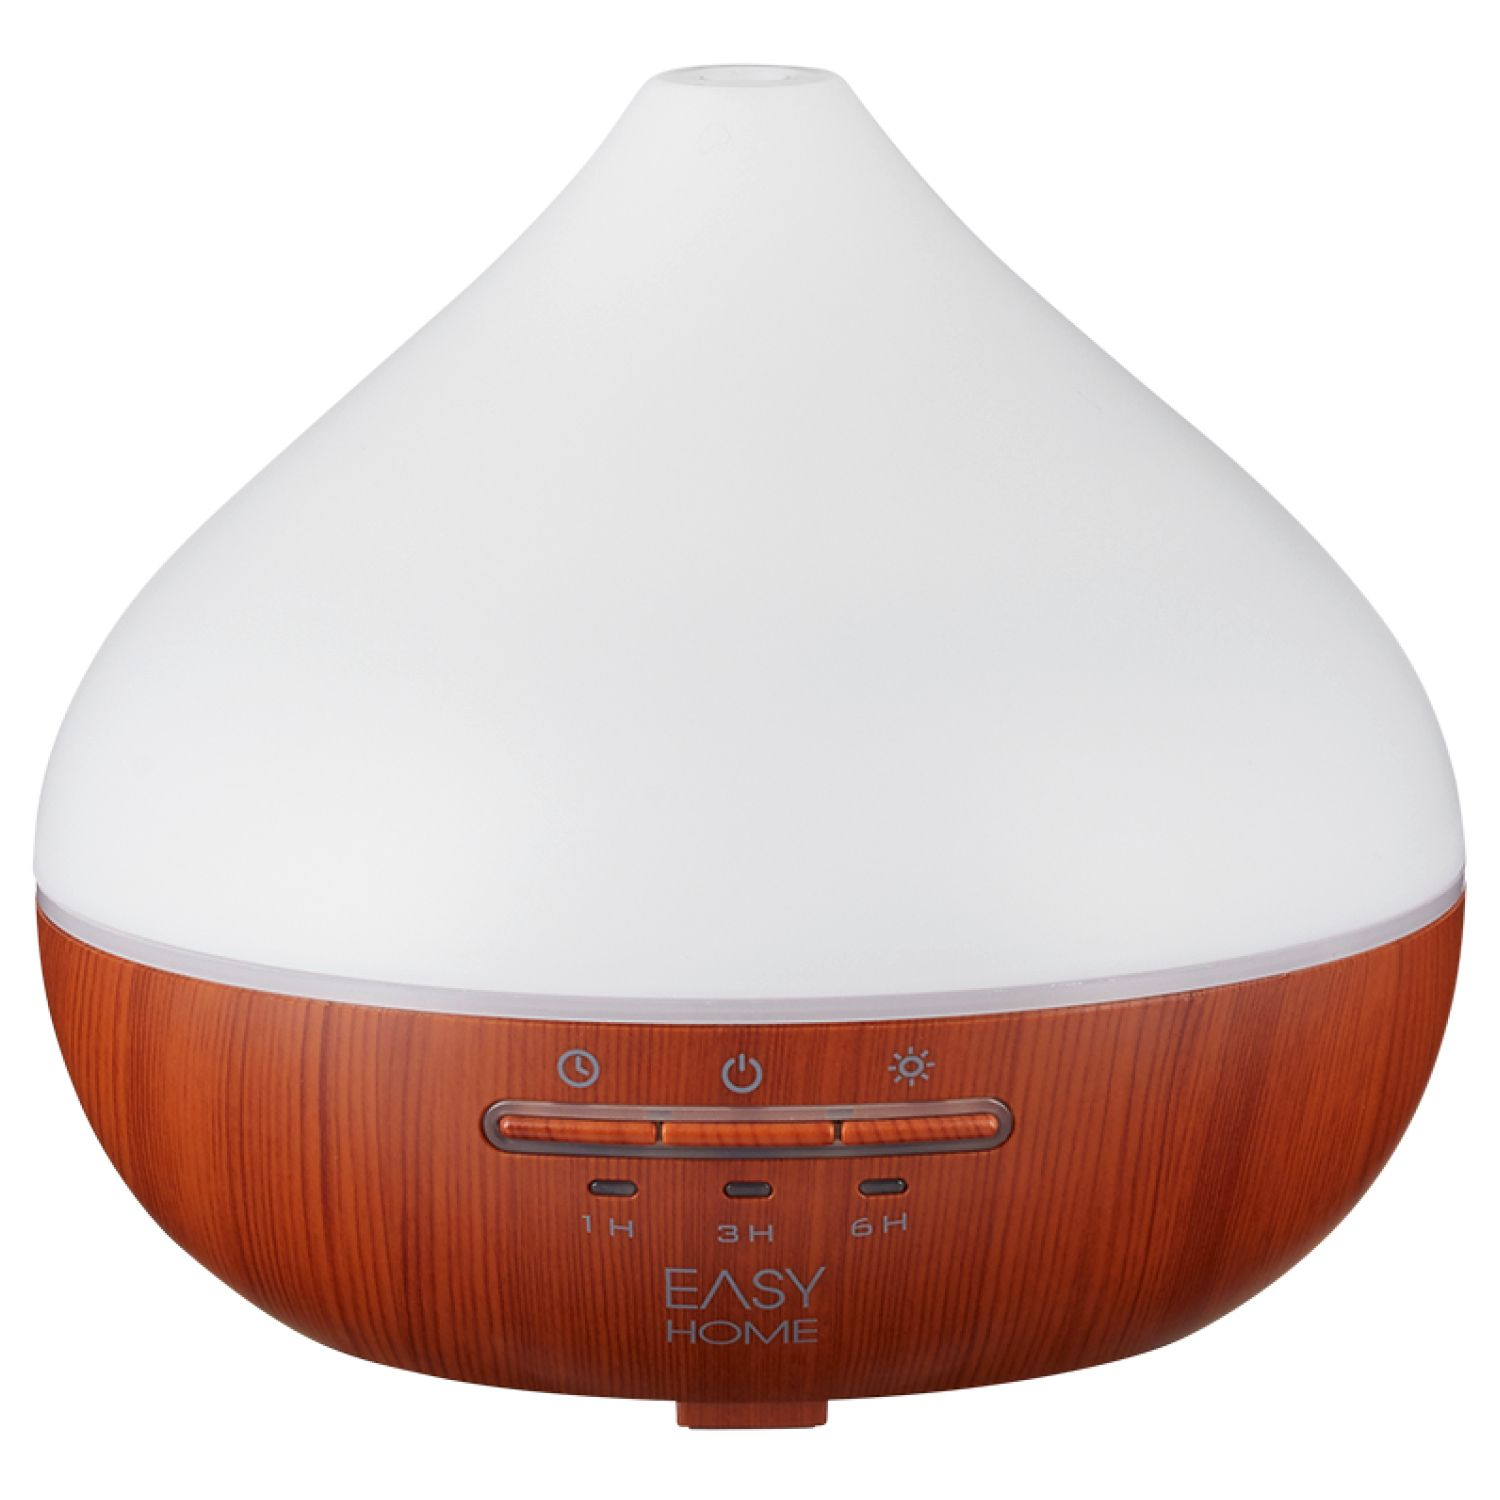 EASY HOME® Aroma Diffuser*